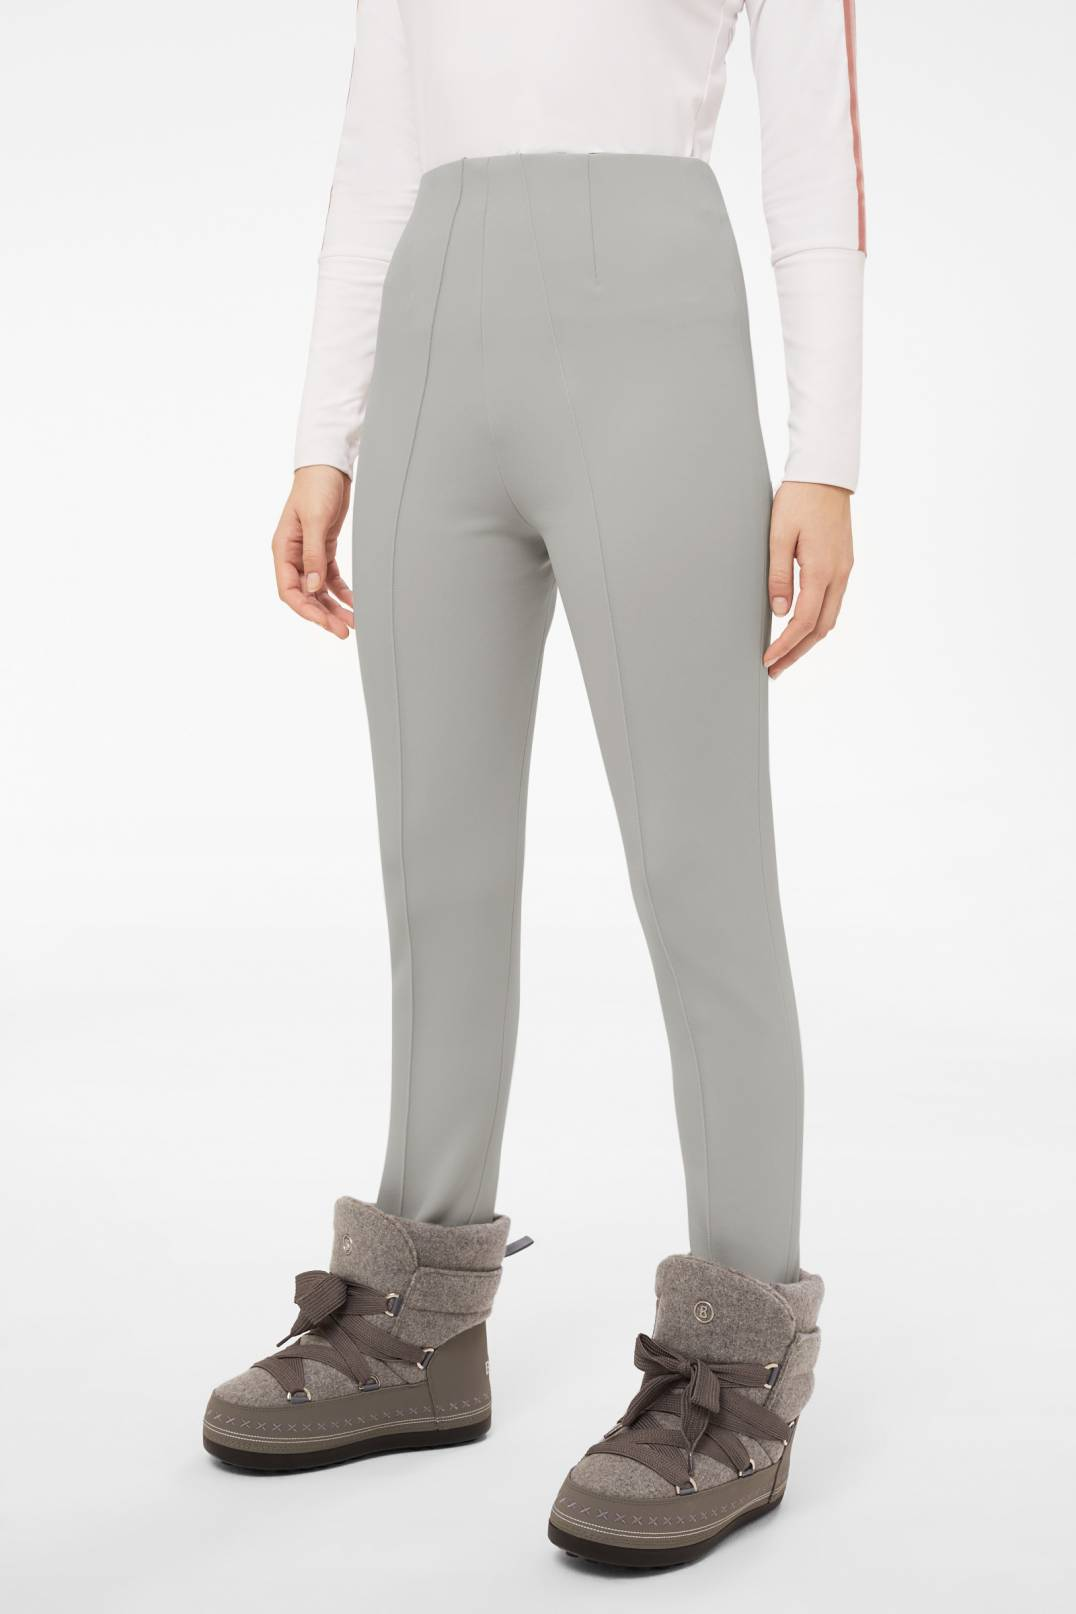 1d2f91a74020e Bogner Sport Elaine Stirrup trousers in Silver grey for Women ...